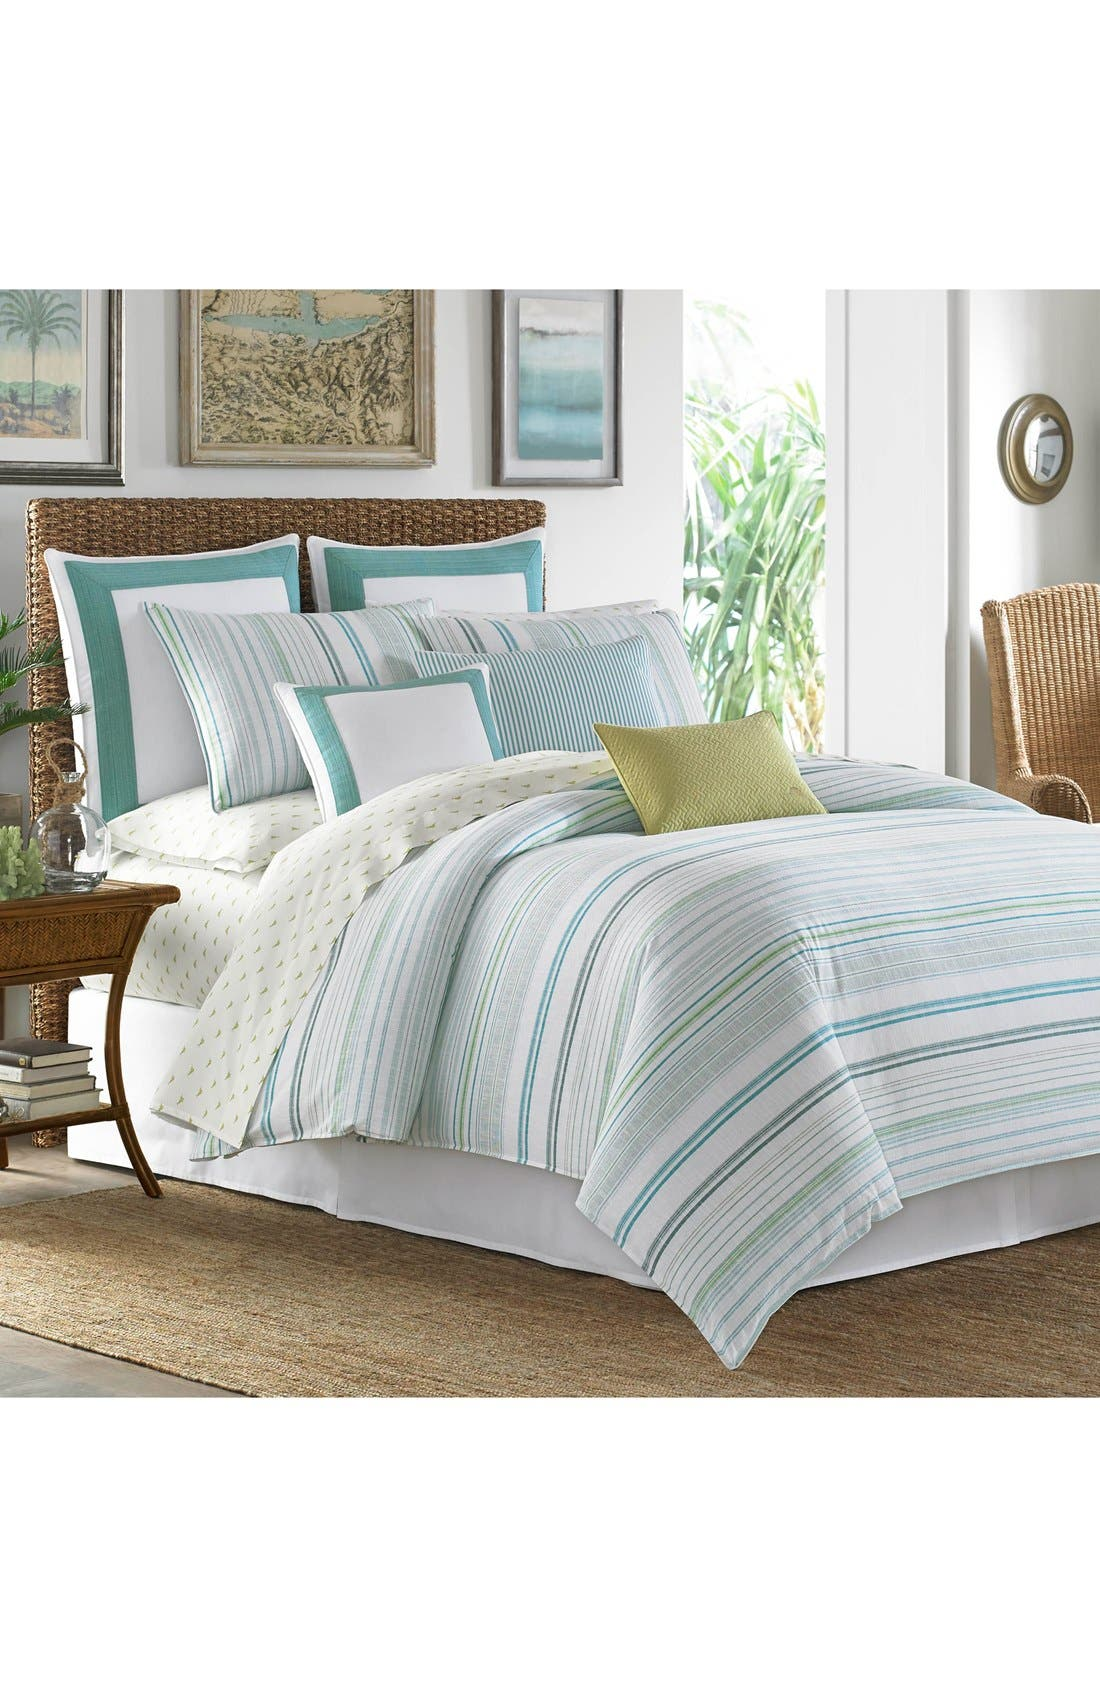 Alternate Image 2  - Tommy Bahama La Scala Breezer Comforter, Sham & Bed Skirt Set